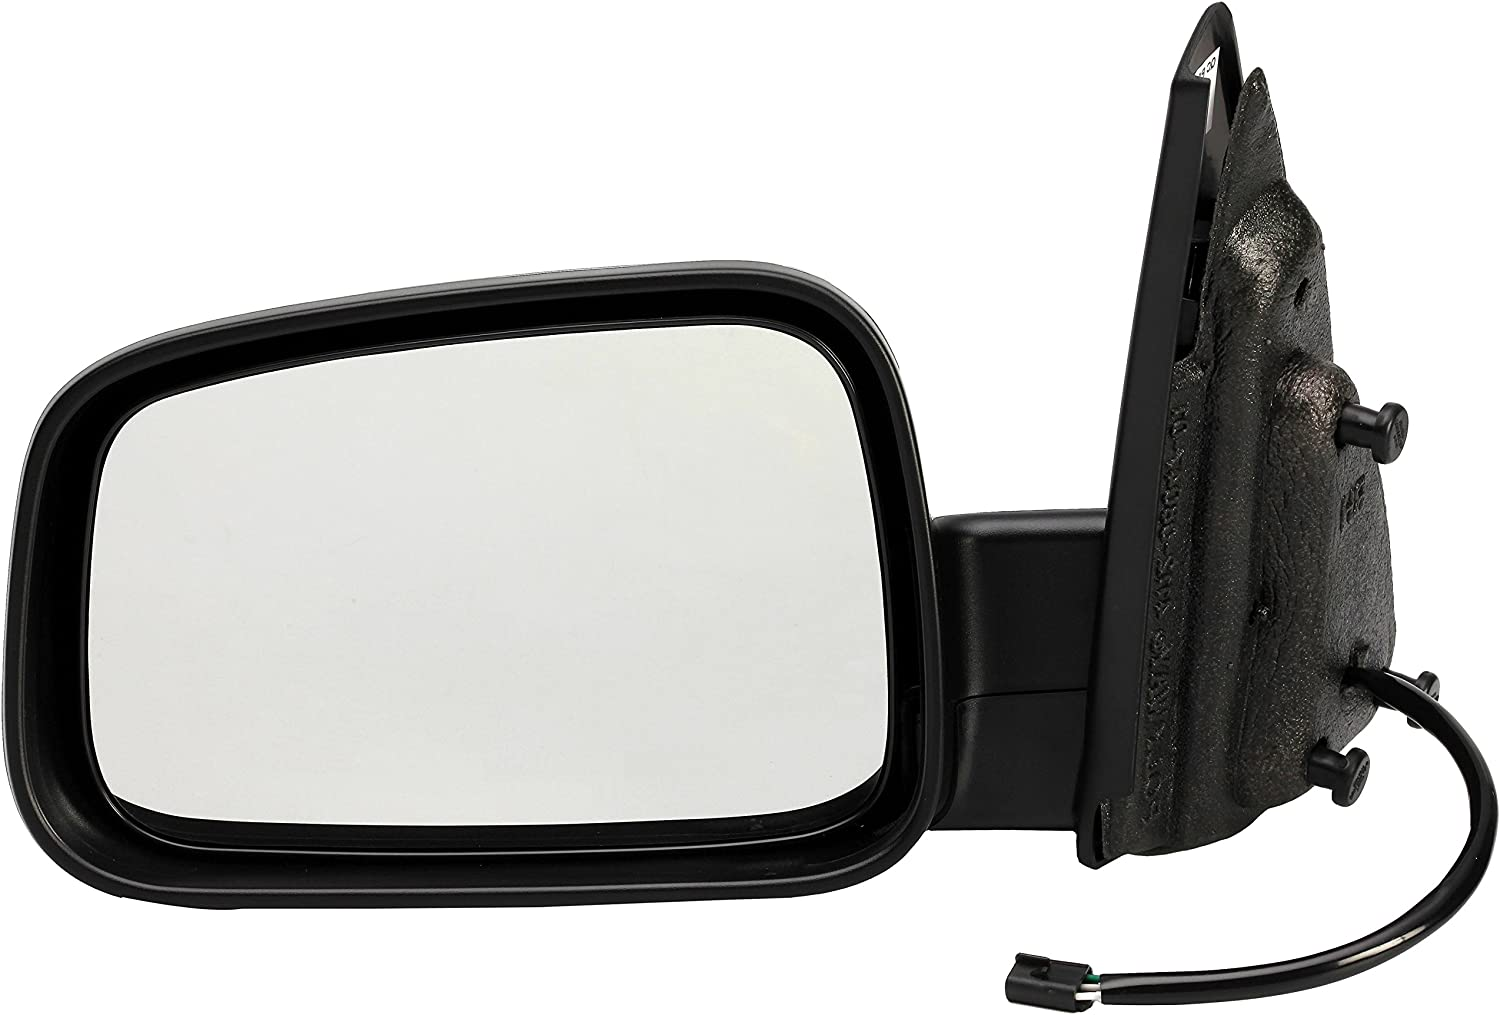 Dorman 955-908 Driver Side Power View Mirror